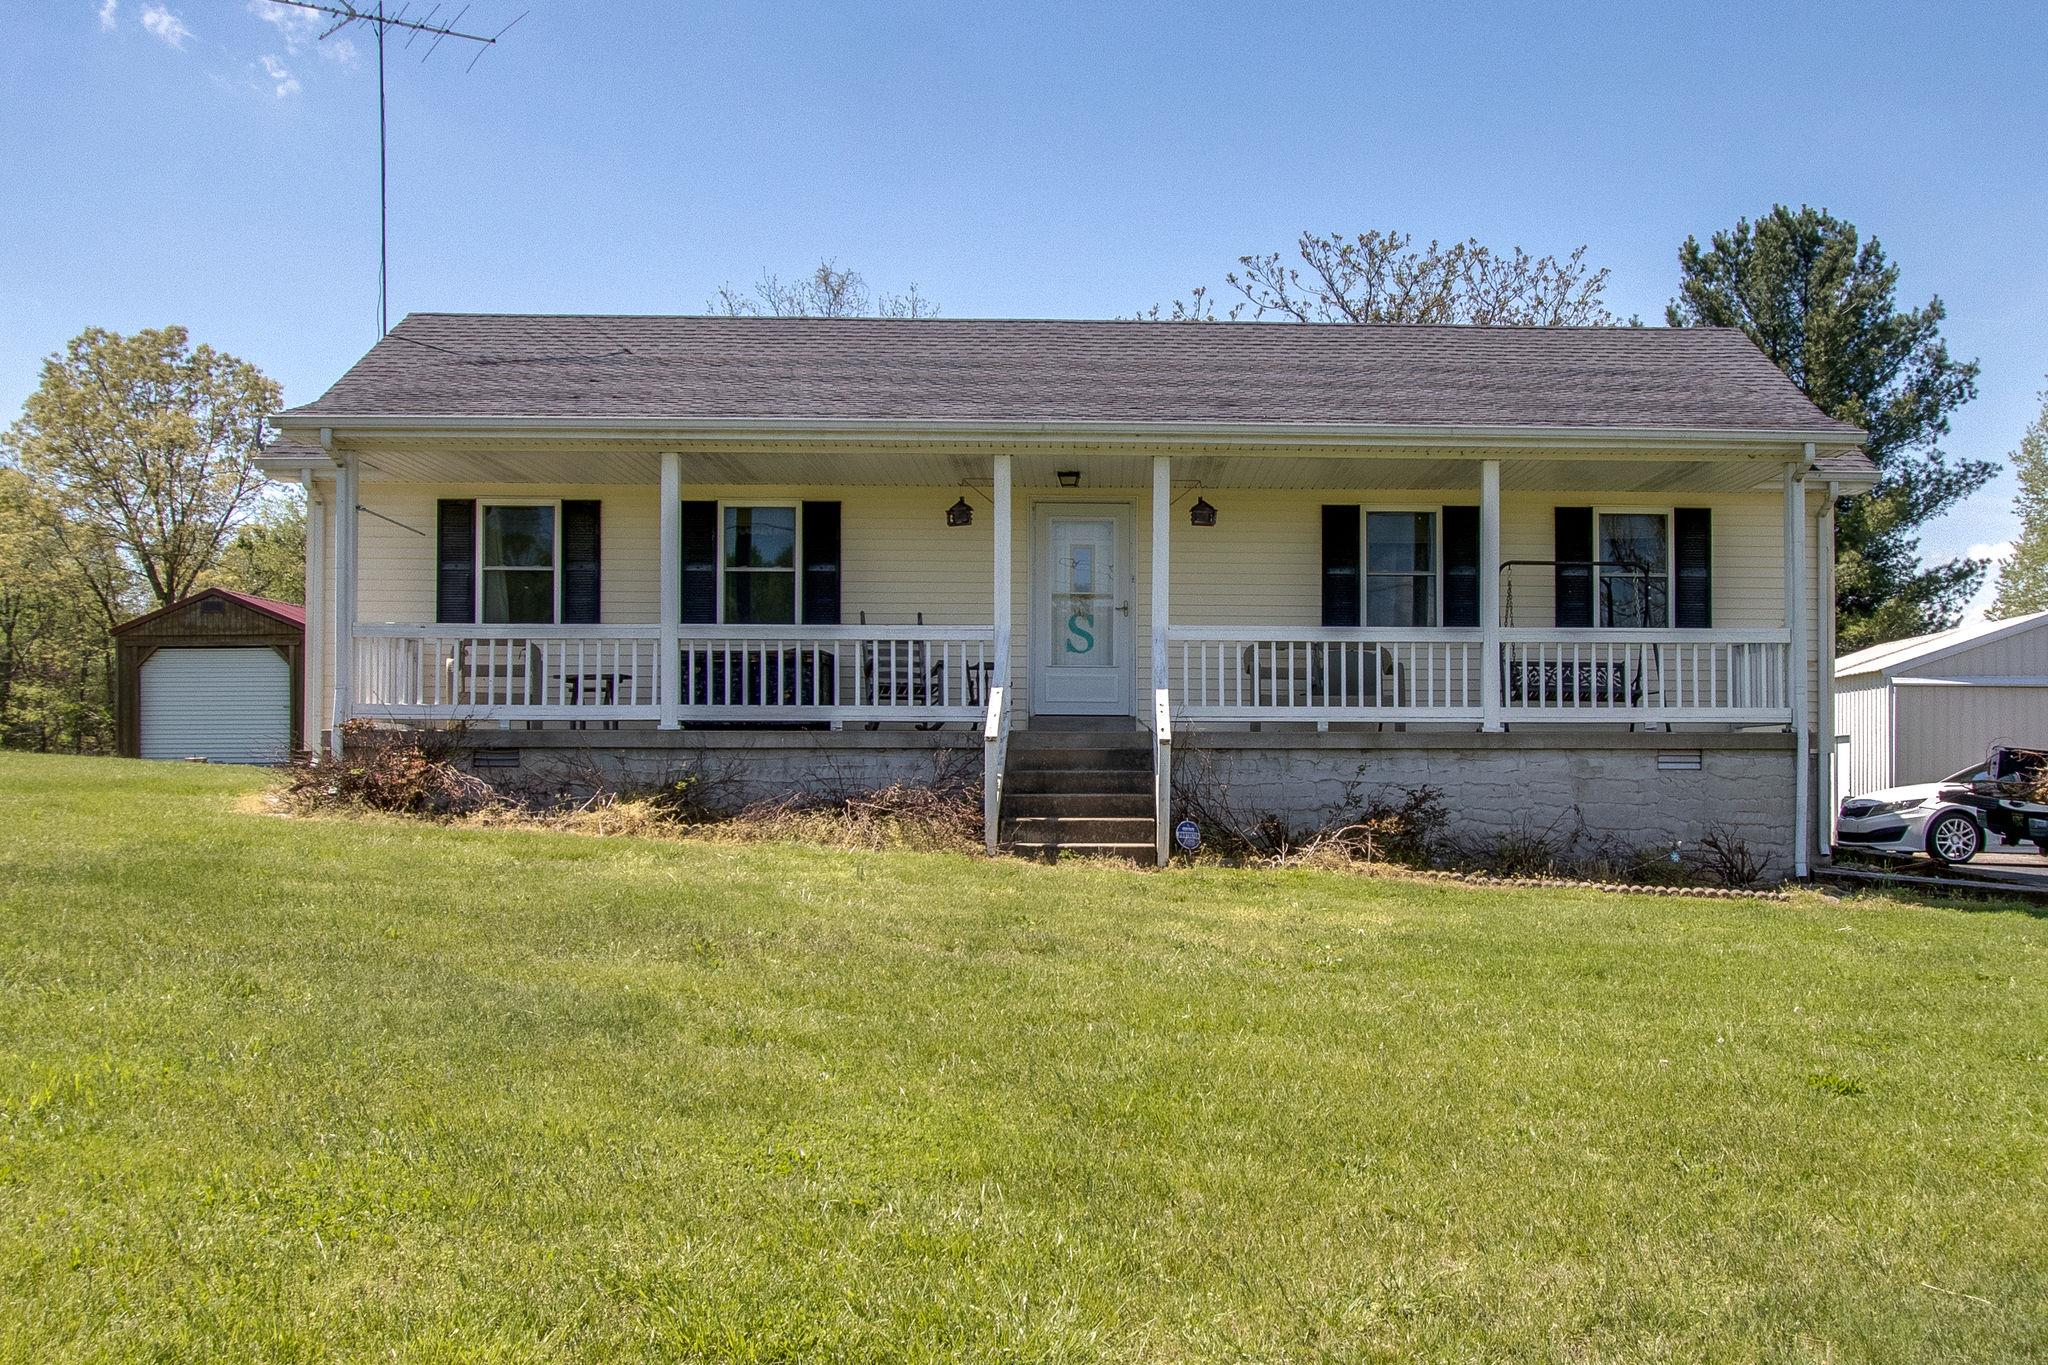 2295 Gamaliel Rd, Red Boiling Springs, TN 37150 - Red Boiling Springs, TN real estate listing